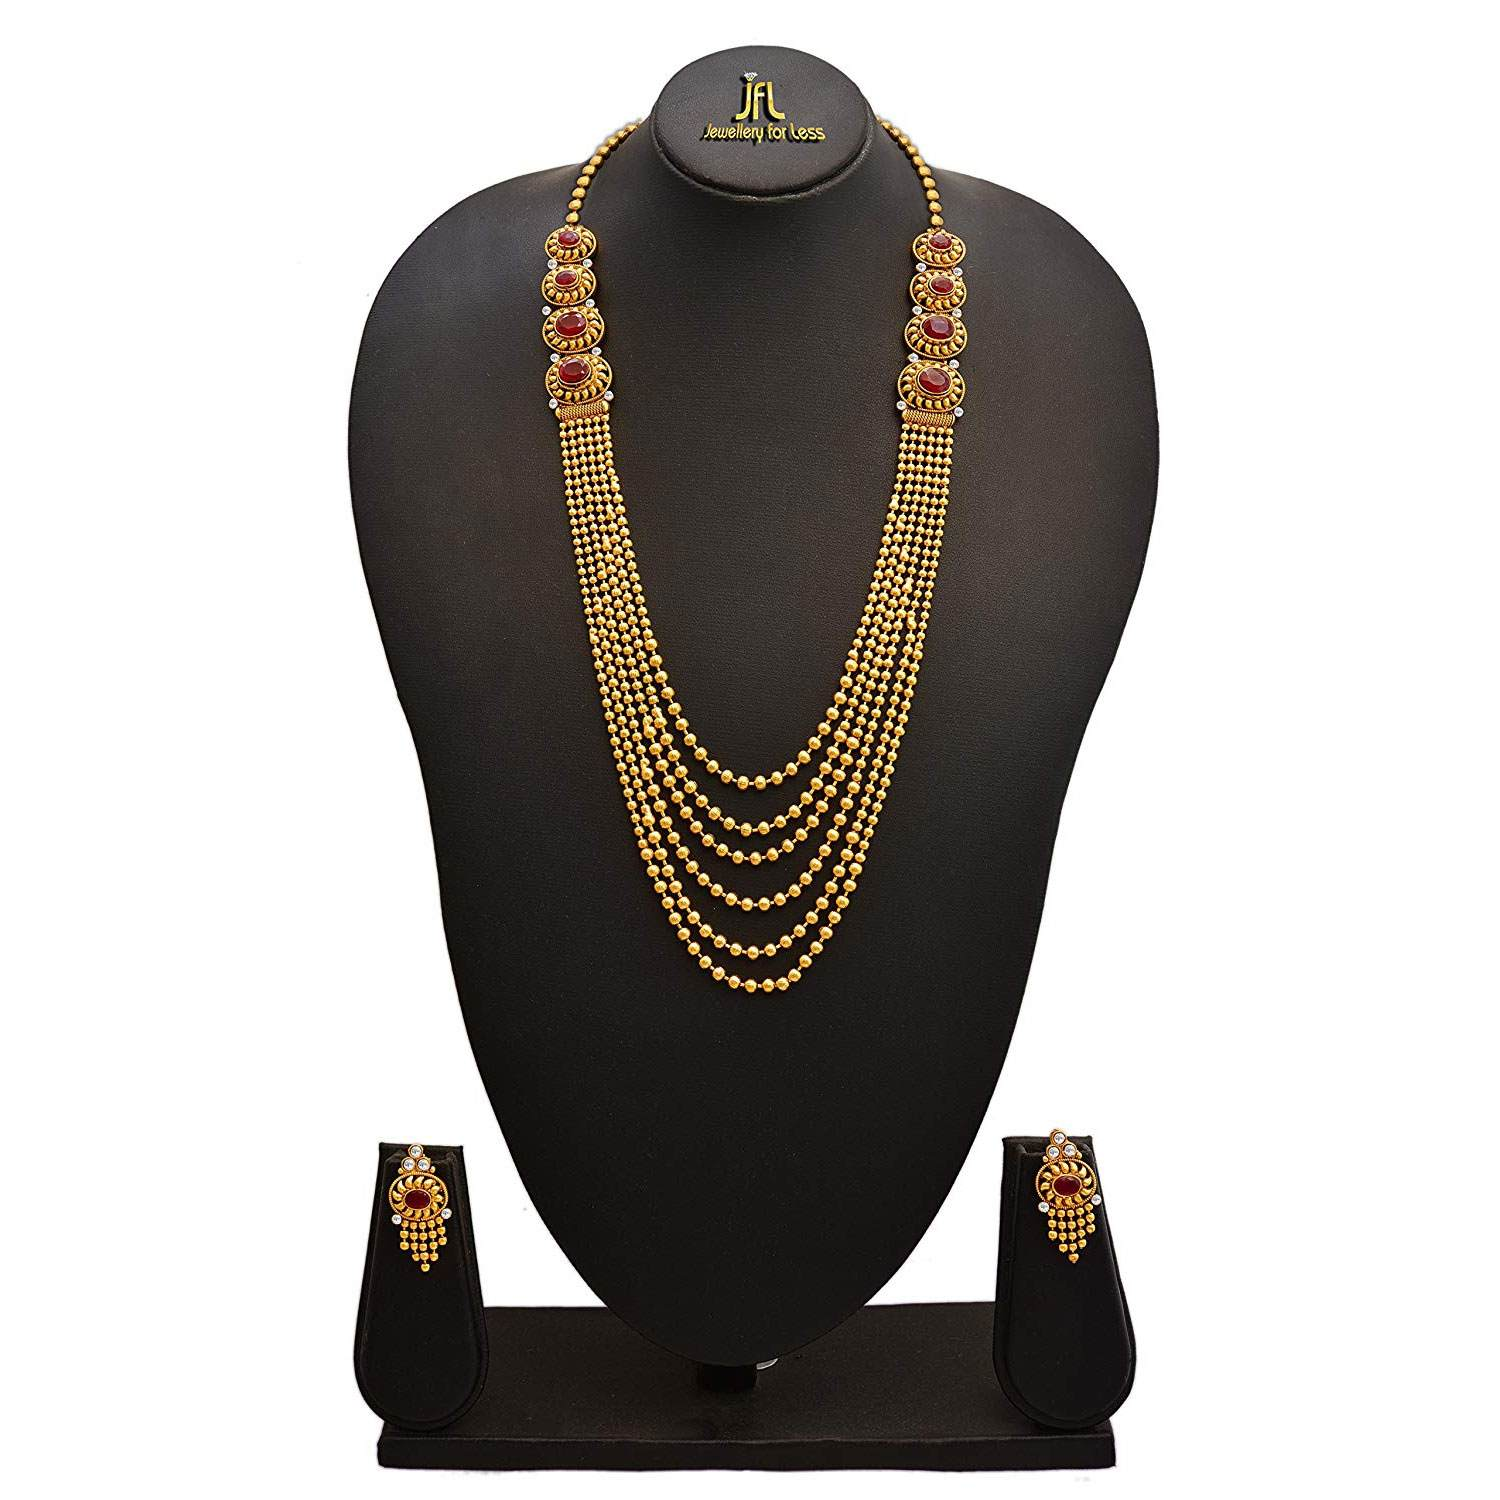 JFL -Traditional Ethnic One Gram Gold Plated Multi Strands Round Gold Bead Stone Champagne Diamond Designer Necklace With Earrings Set For Women & Girls.